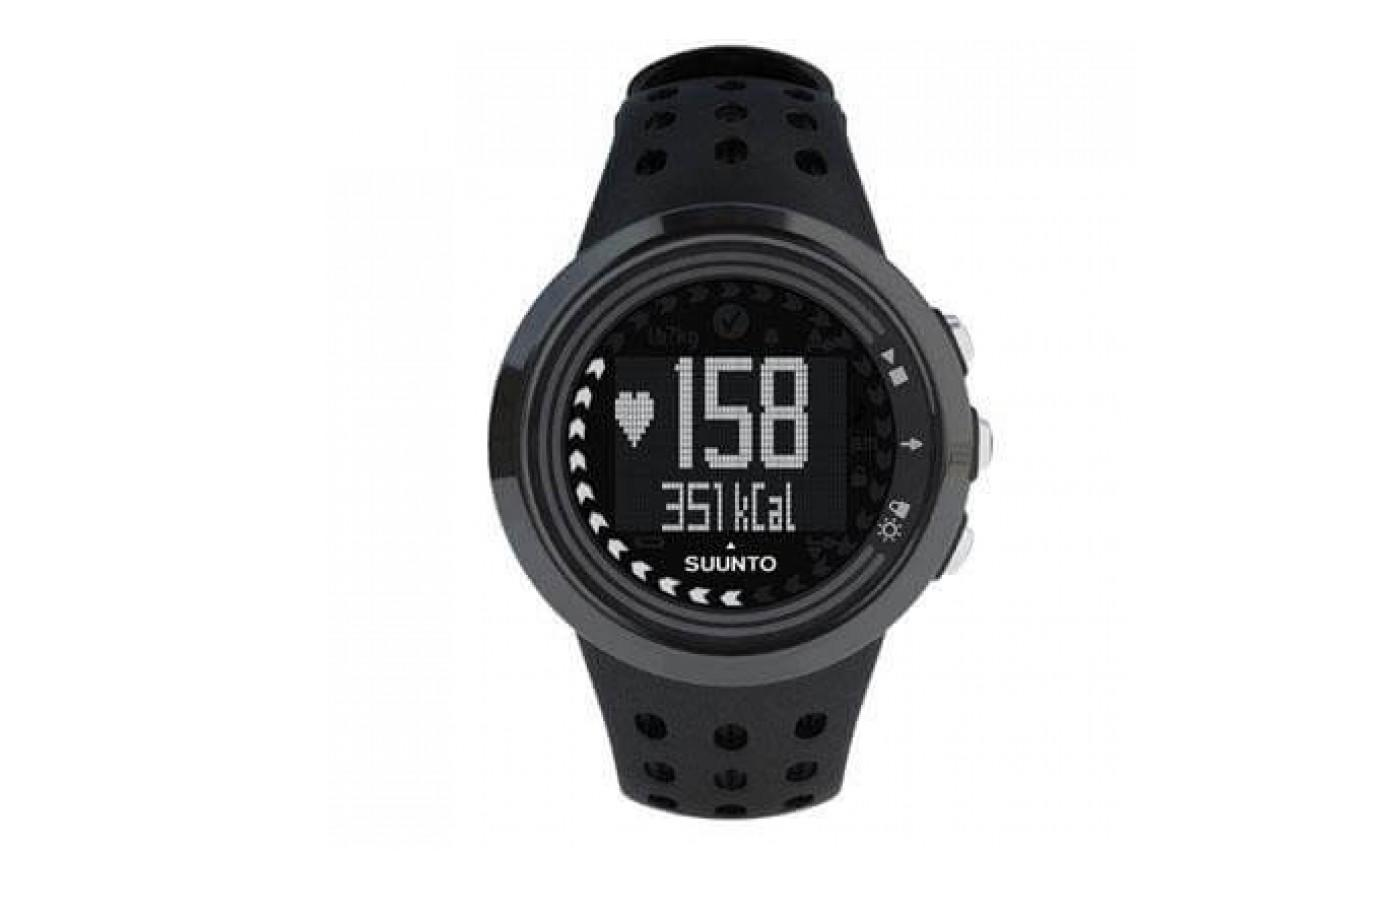 Suunto M5 has a sleek, simple design